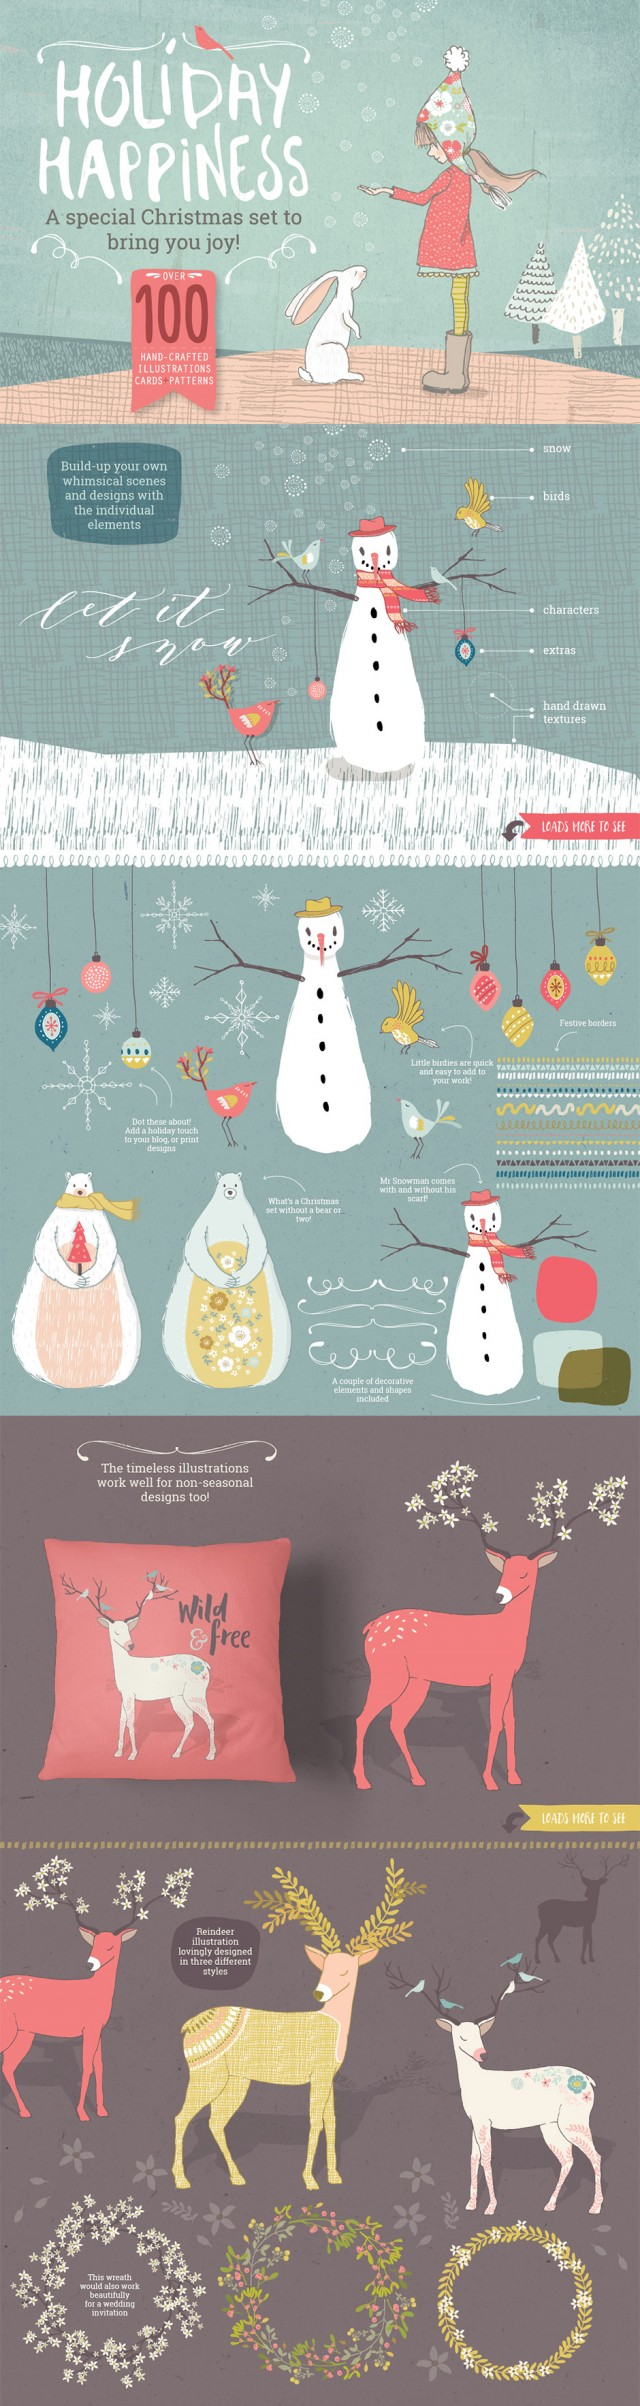 november-vectors-2016-fall-holiday-illustration-design-bundle